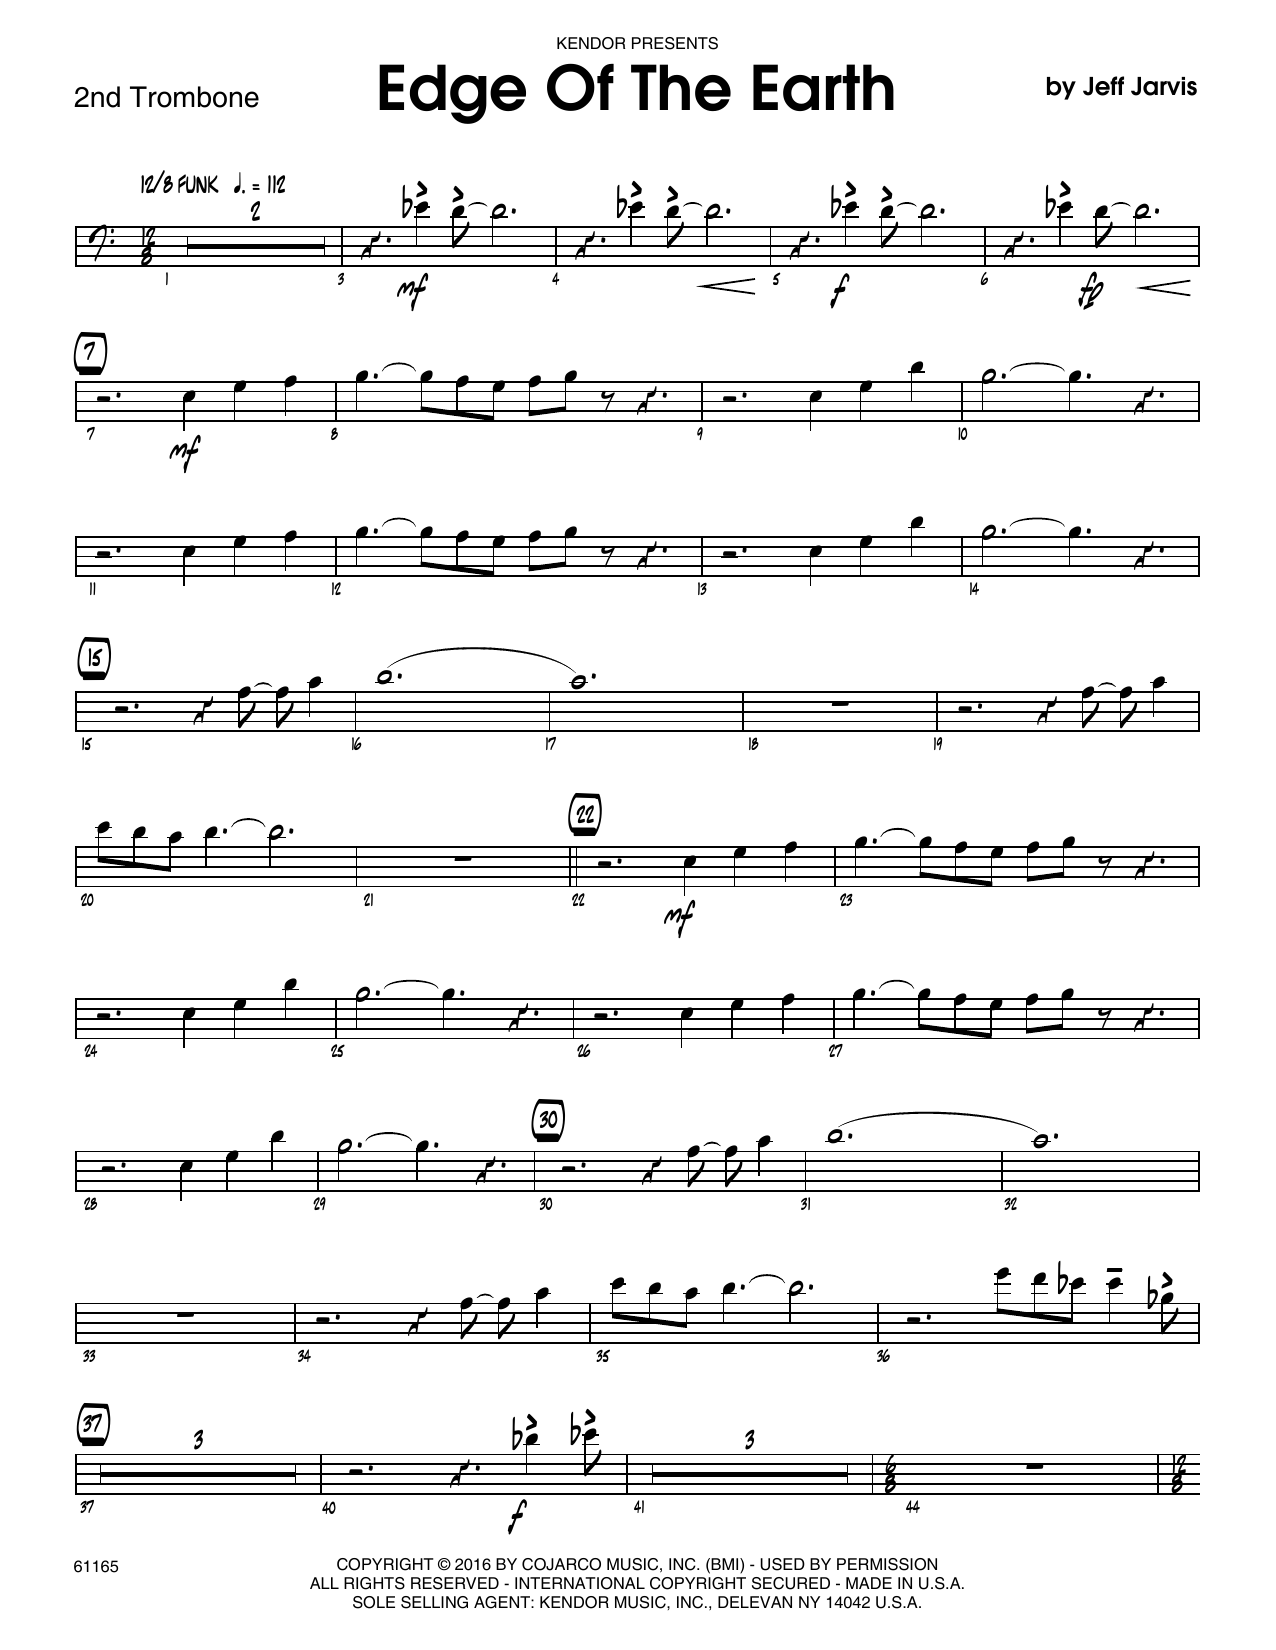 Edge Of The Earth - 2nd Trombone Sheet Music